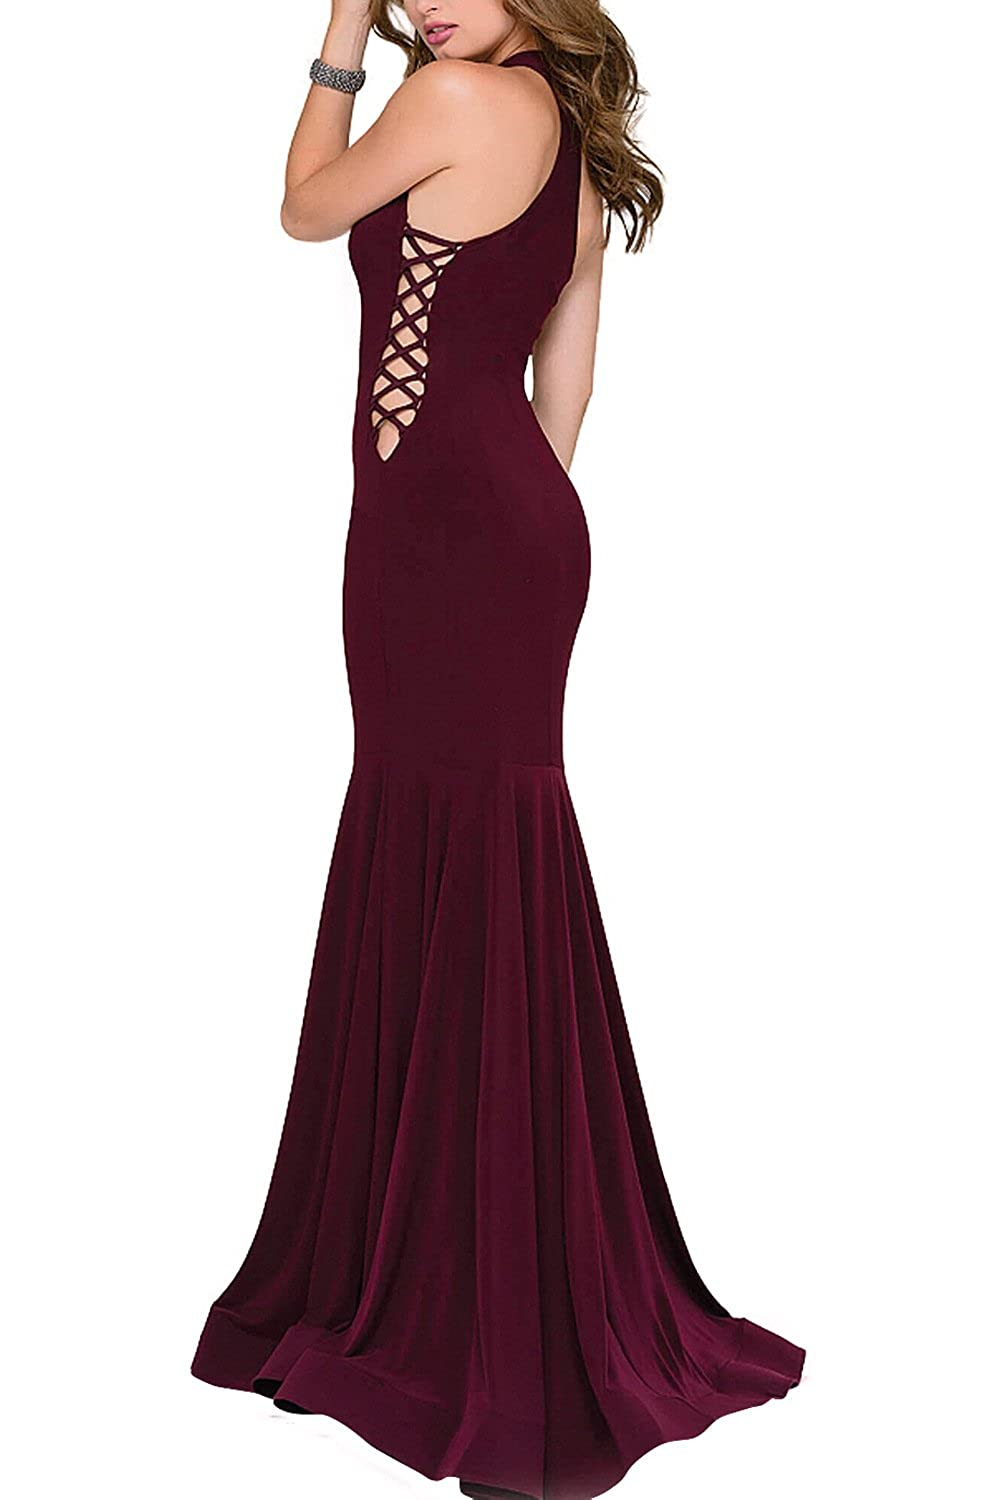 Weddder Women Sexy Mermaid Prom Dress Long Sleeveless Cross Straps Evening Gown at Amazon Womens Clothing store: